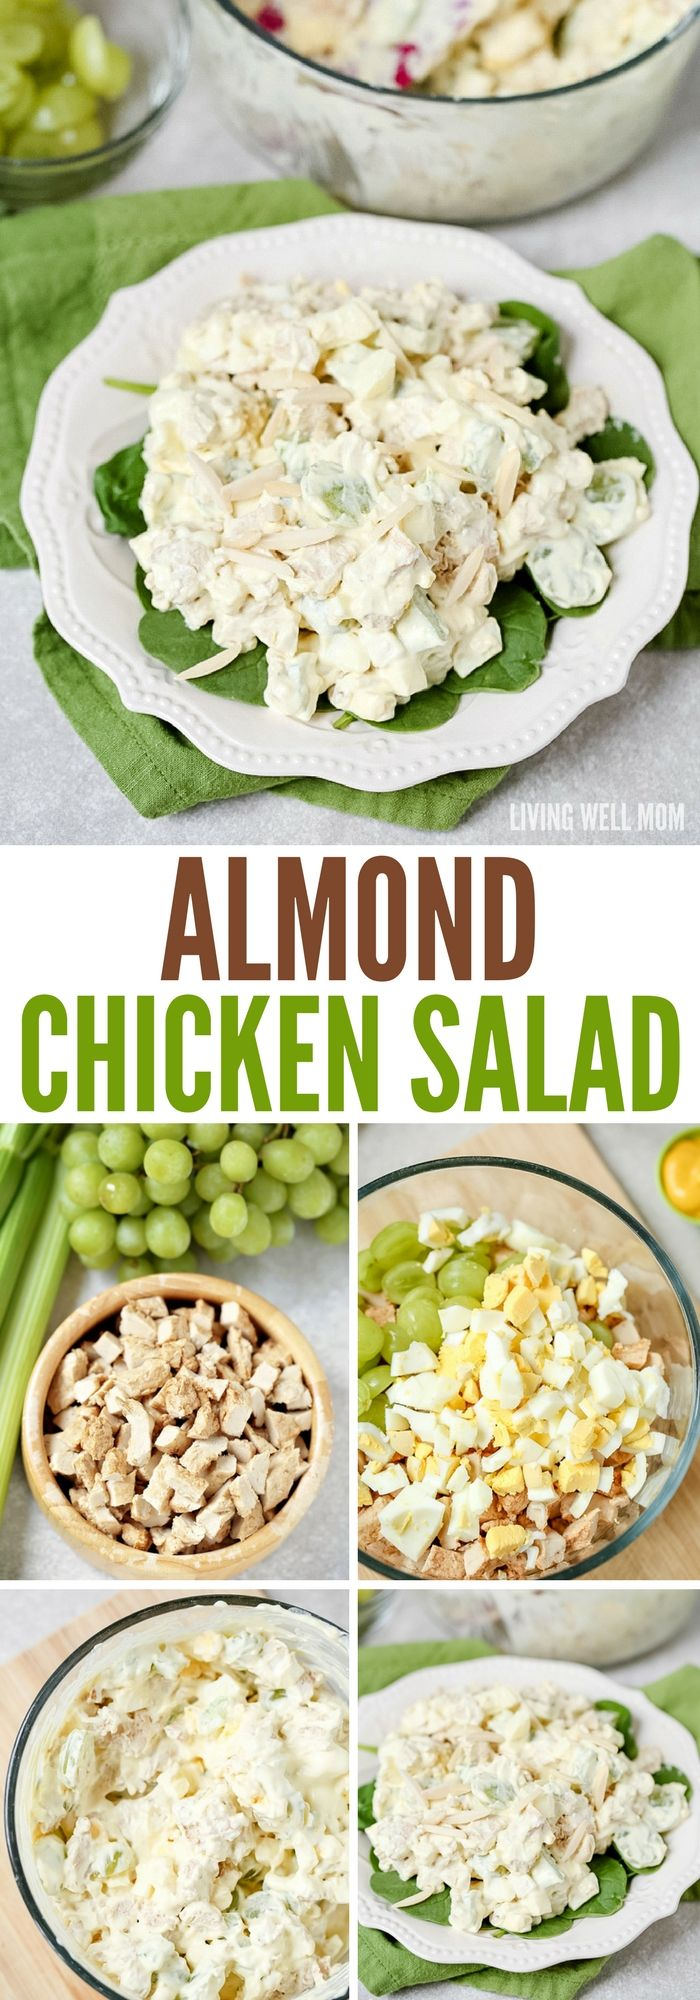 This delicious Almond Chicken Salad has slivered almonds, grapes, celery, and hard-boiled eggs tossed with cooked chicken and combined with mayo, sour cream, and seasoning. It's perfect for a delicious lunch or even enjoyed as supper on a hot summer day.